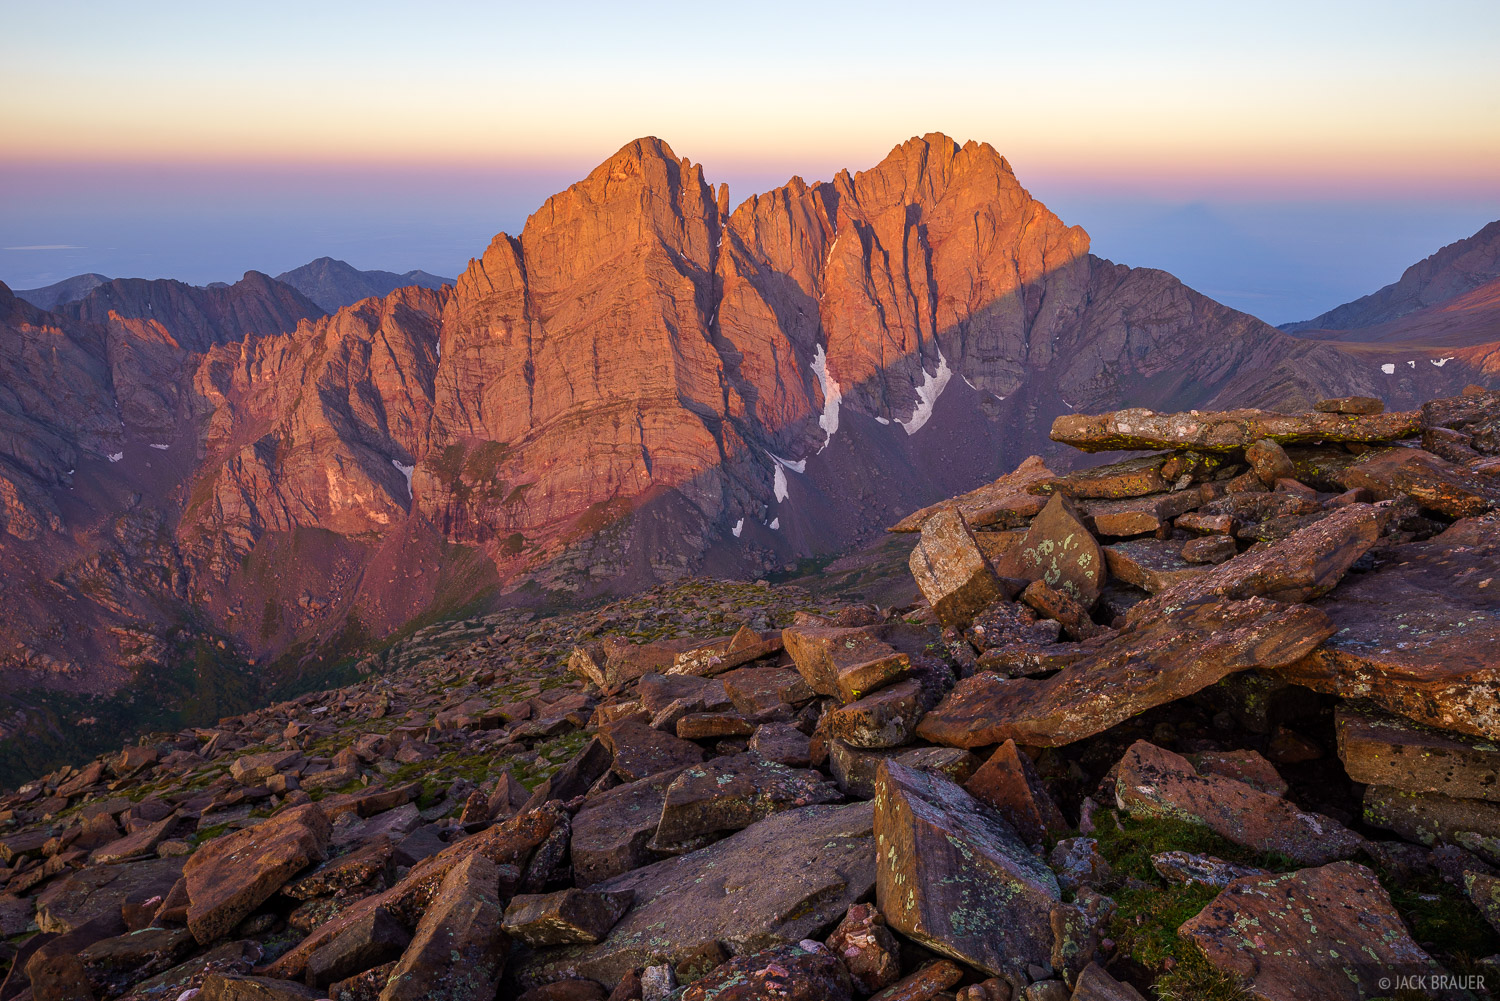 Colorado, Crestone Needle, Crestone Peak, Humboldt Peak, Sangre de Cristos, 14er, sunrise, Sangre de Cristo Wilderness, photo